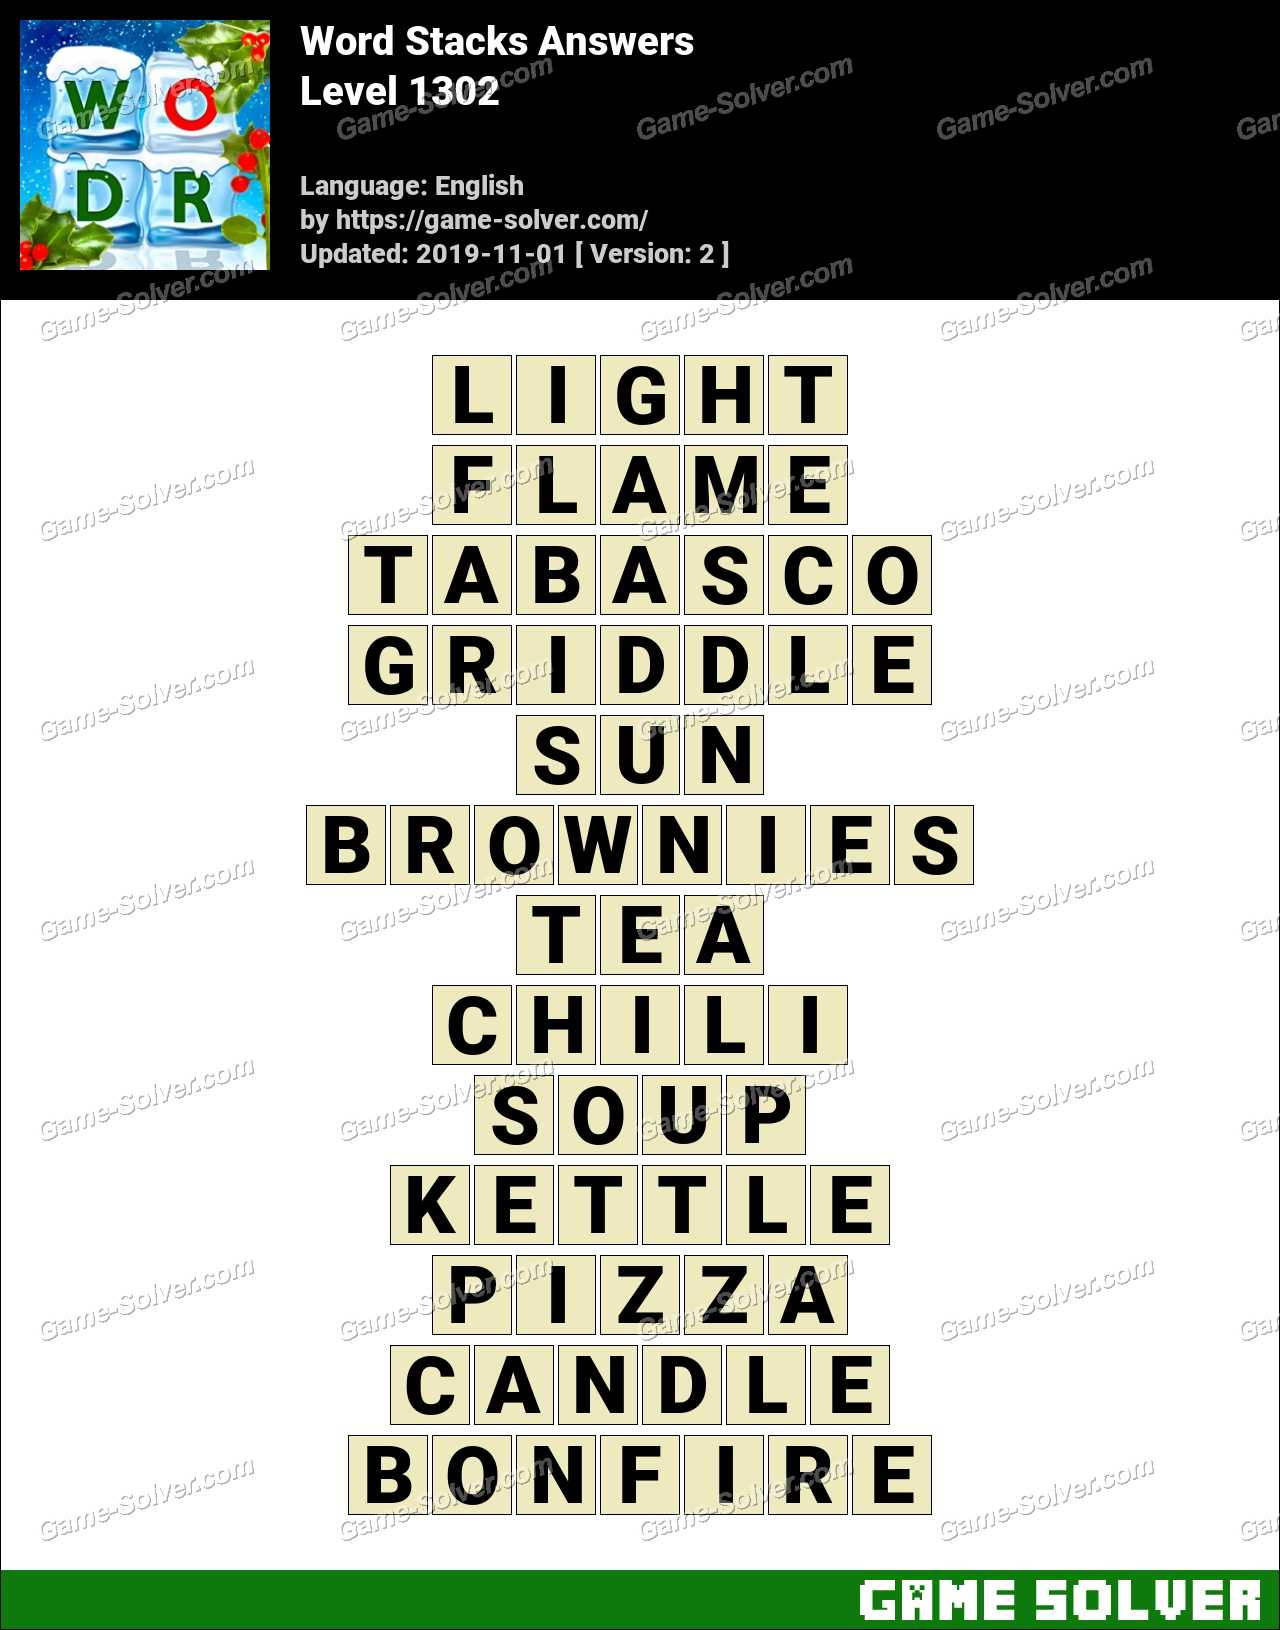 Word Stacks Level 1302 Answers